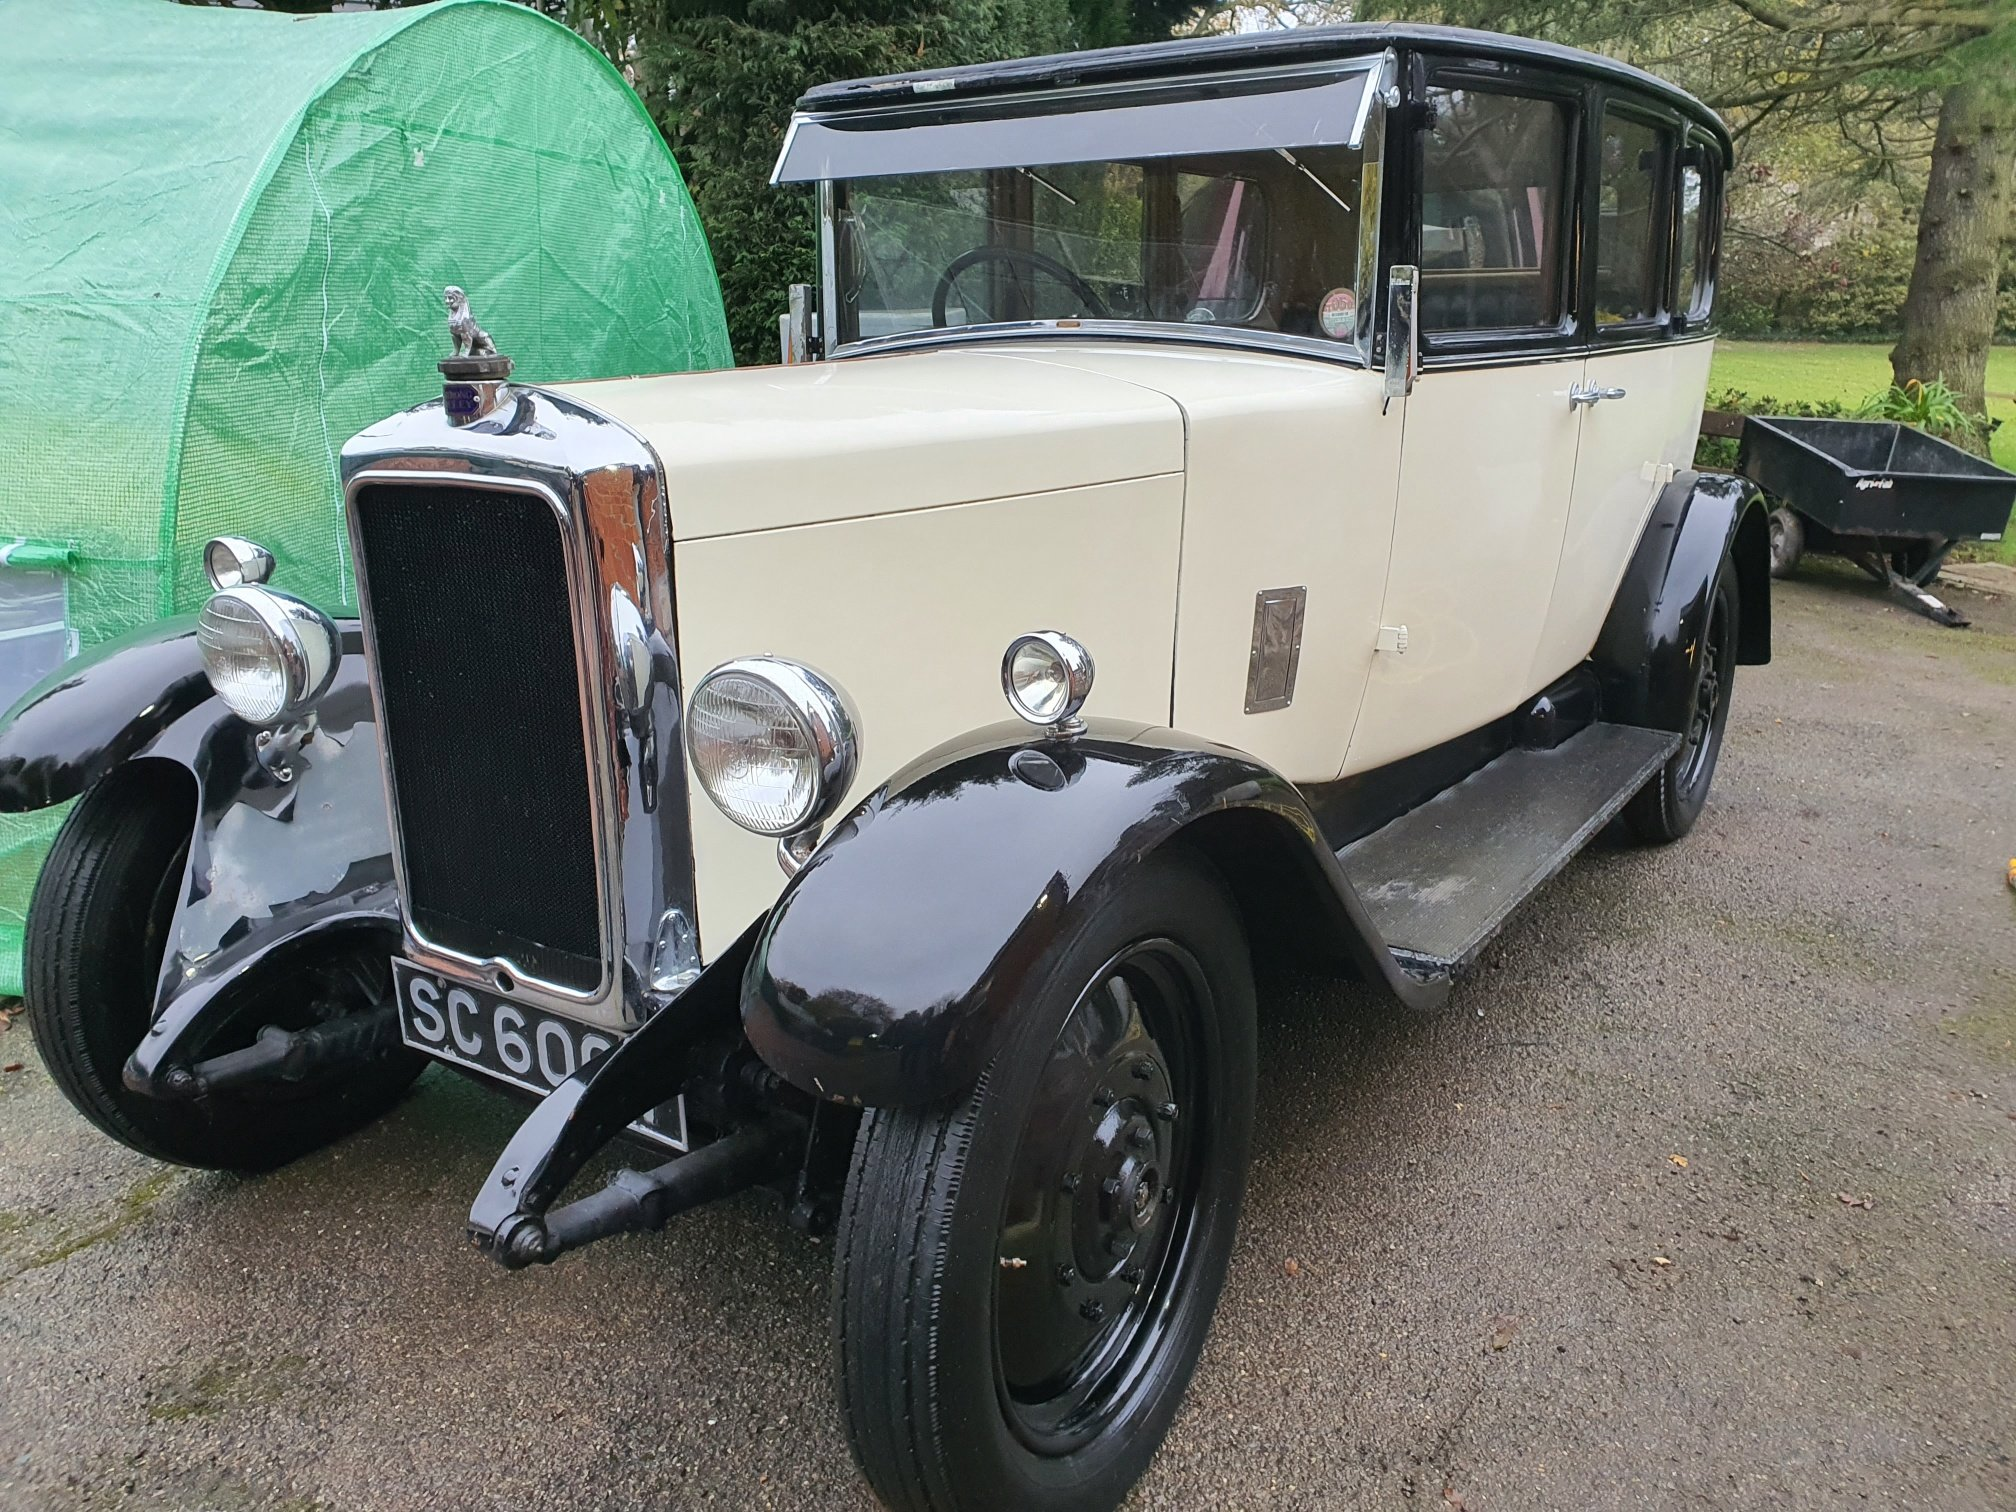 Picture of 1929 Armstrong Siddley, Long 15-  £12,500 ono - Rare